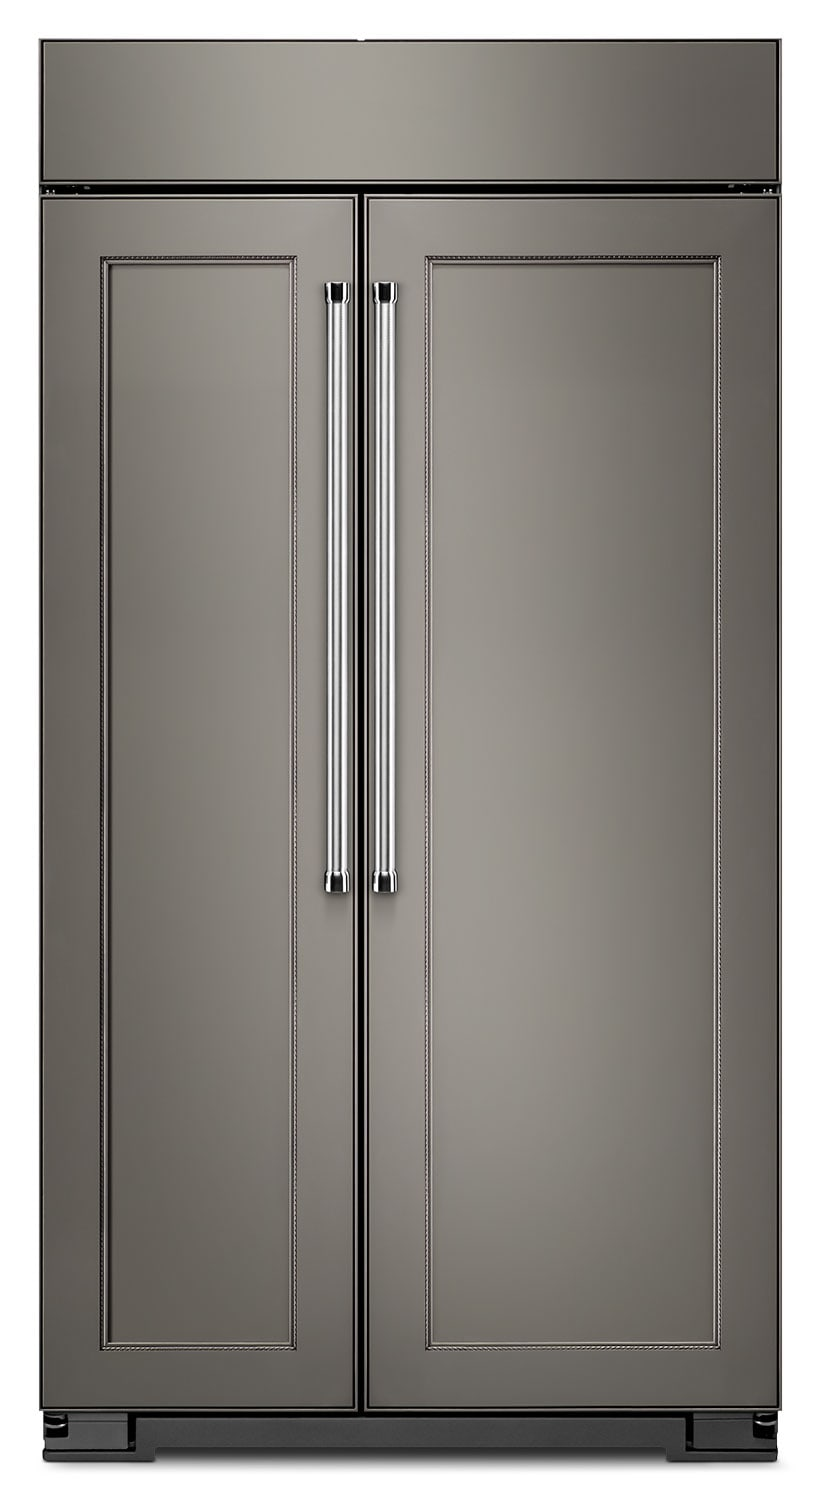 Refrigerators and Freezers - KitchenAid 25.5 Cu. Ft. Built-In Side-by-Side Refrigerator - Panel Ready